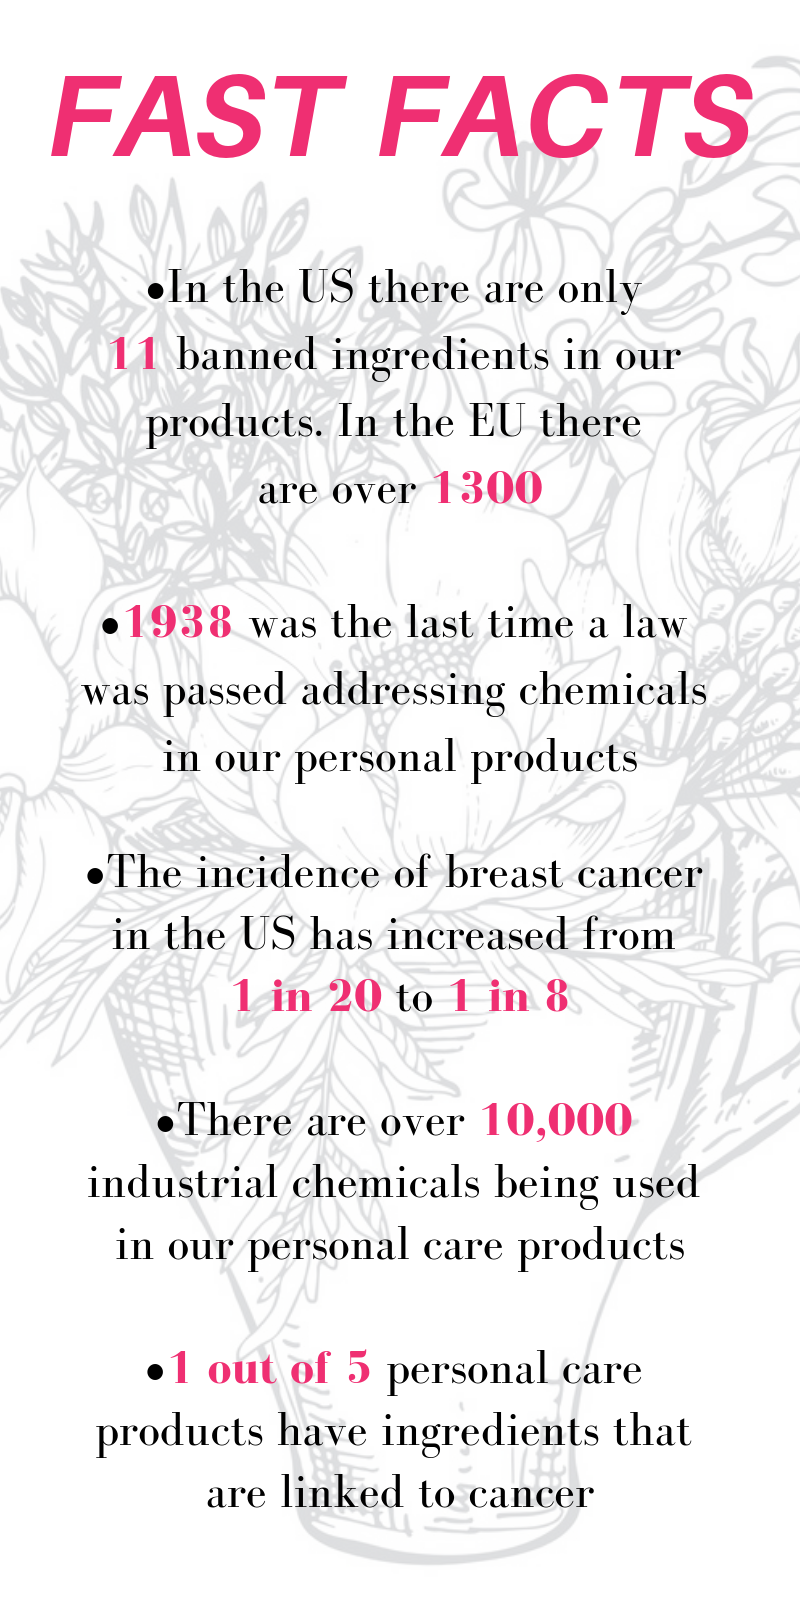 fast facts: in the US there are only 11 banned ingredients in our products. In the EU there are over 1300. 1938 was the last time a law was passed addressing chemicals in our personal products. the incidence of breast cancer in the US has increased from 1 in 20 to 1 in 8. there are over 10,000 industrial chemicals being used in our personal care products. 1 out of 5 personal care products have ingredients that are linked to cancer.